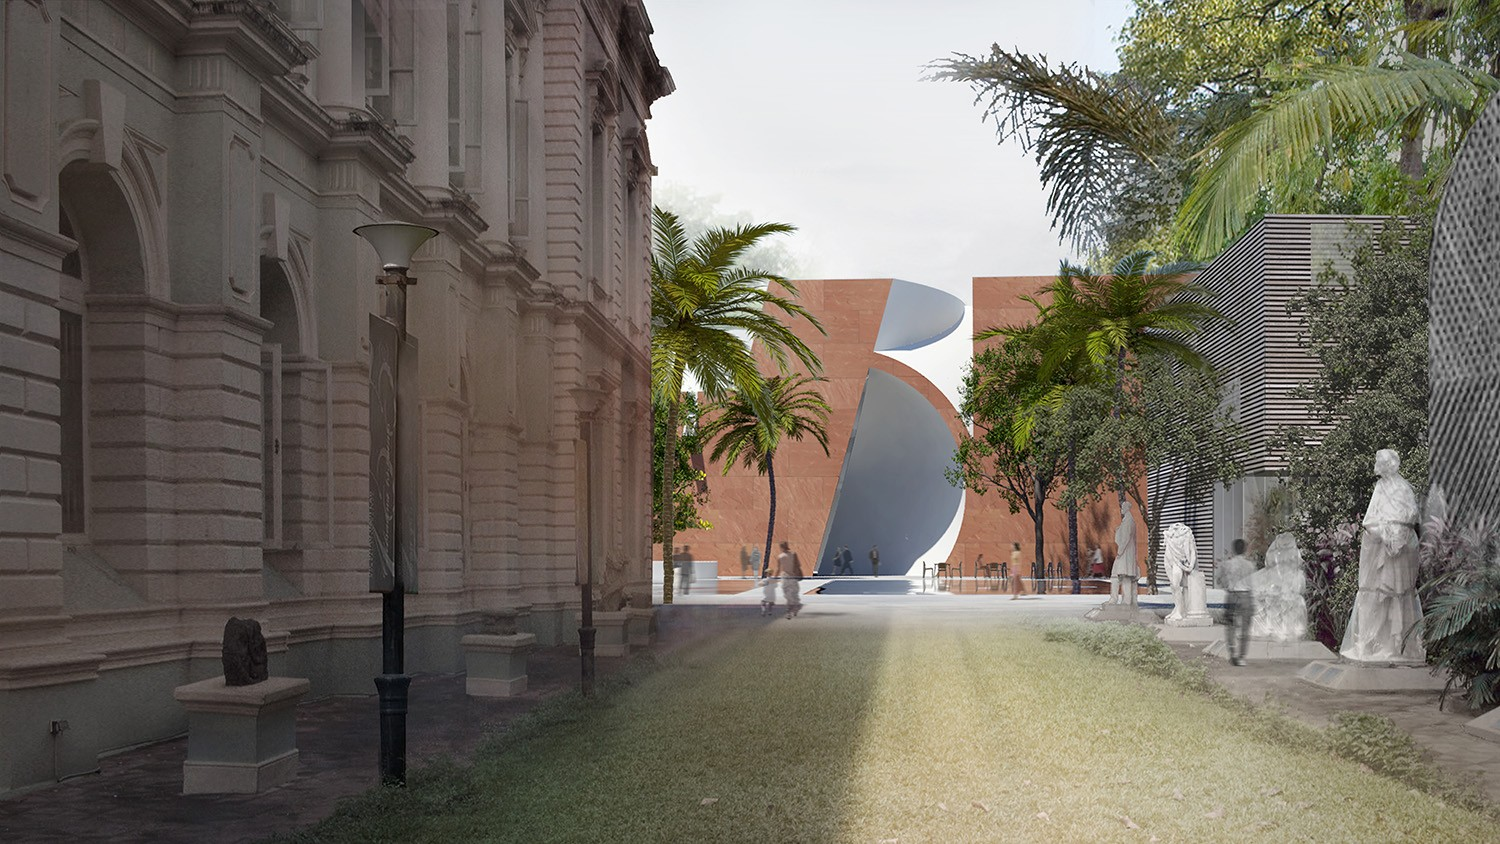 https://s3.us-east-2.amazonaws.com/steven-holl/uploads/projects/project-images/StevenHollArchitects_Mumbai_SHA_03_Path view_WH.jpg